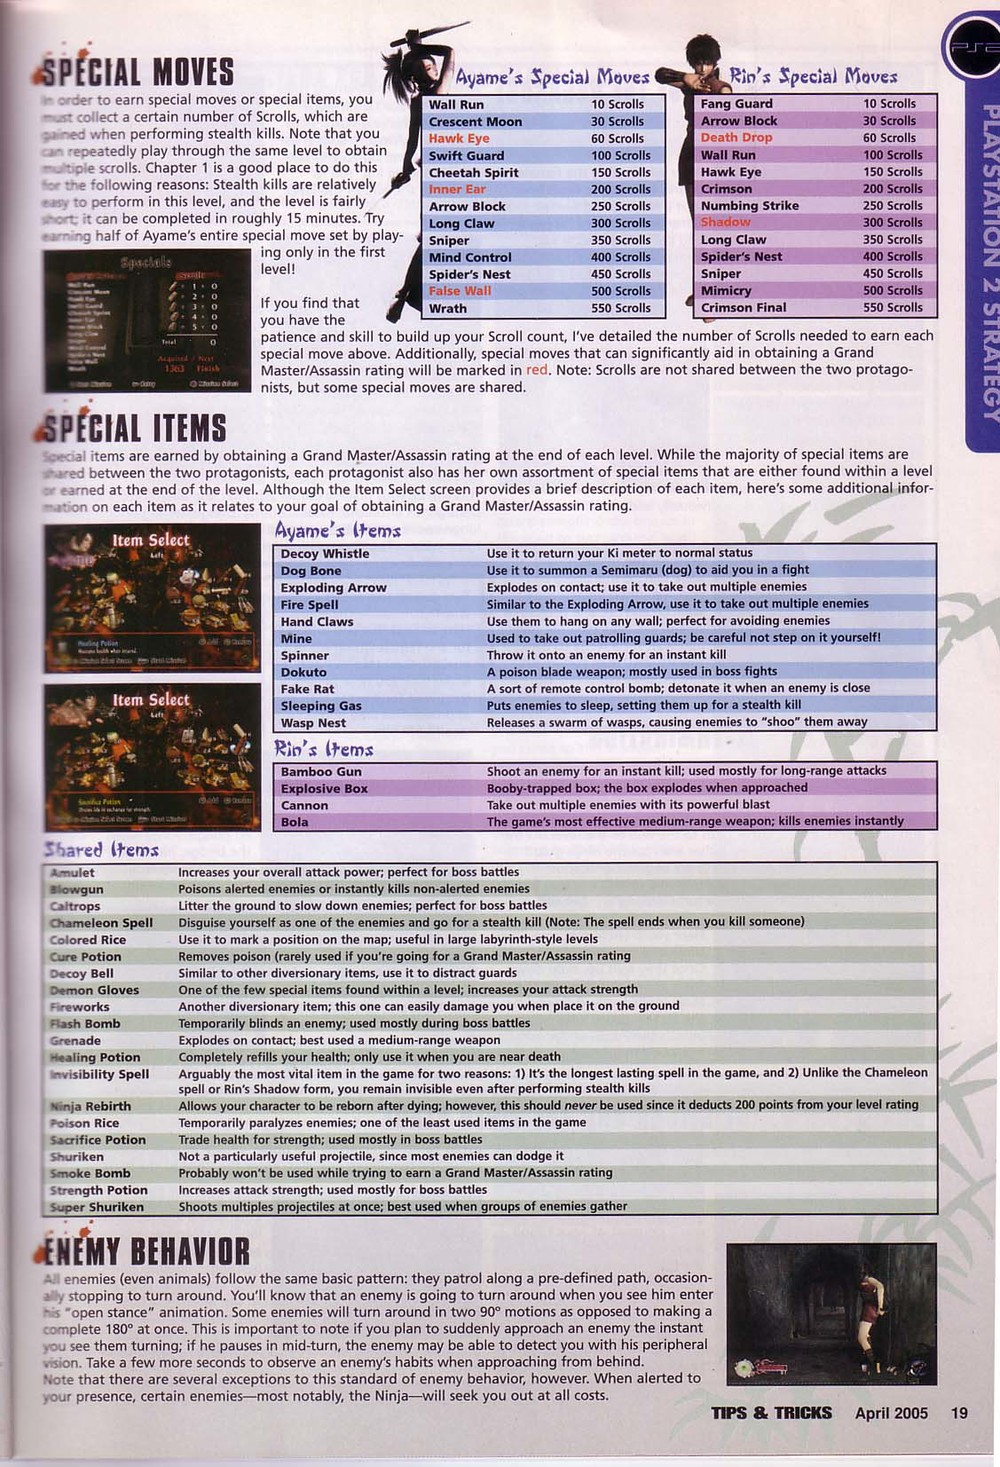 TipsandTricks_April_2005_Tenchu_pg2_Strategy.jpg